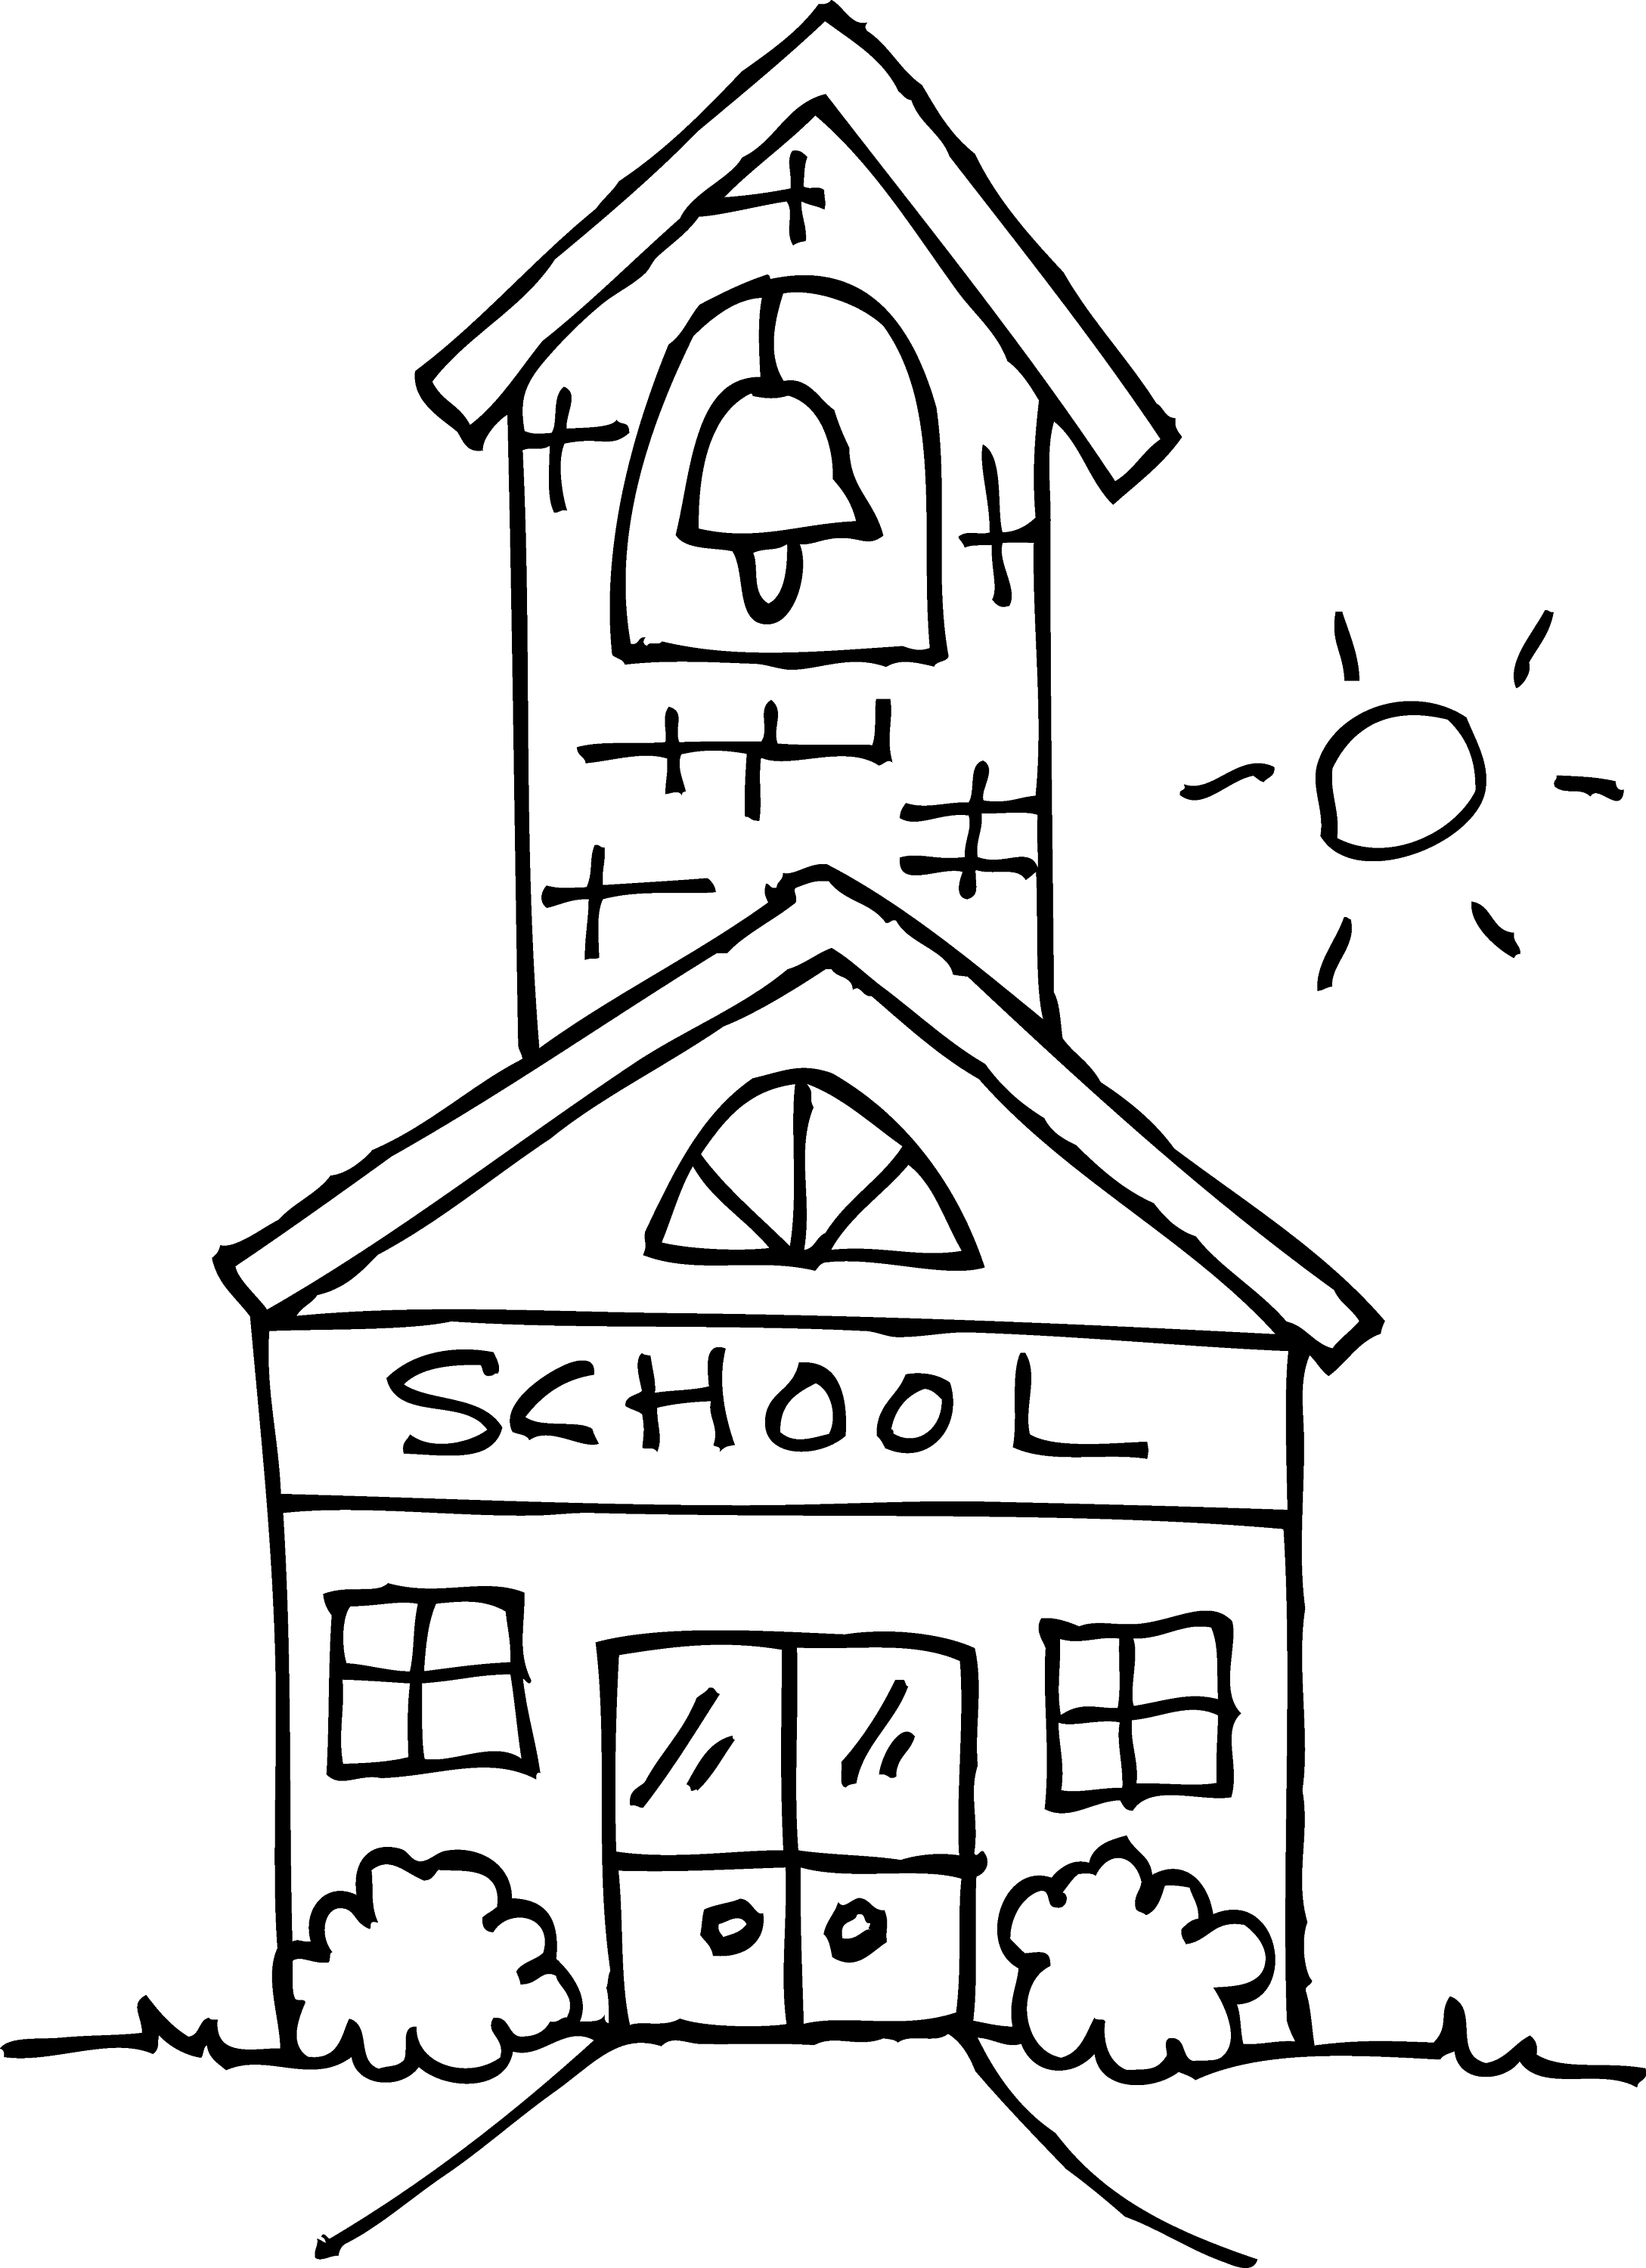 school clipart coloring welcome back to school clipart black and white free coloring clipart school